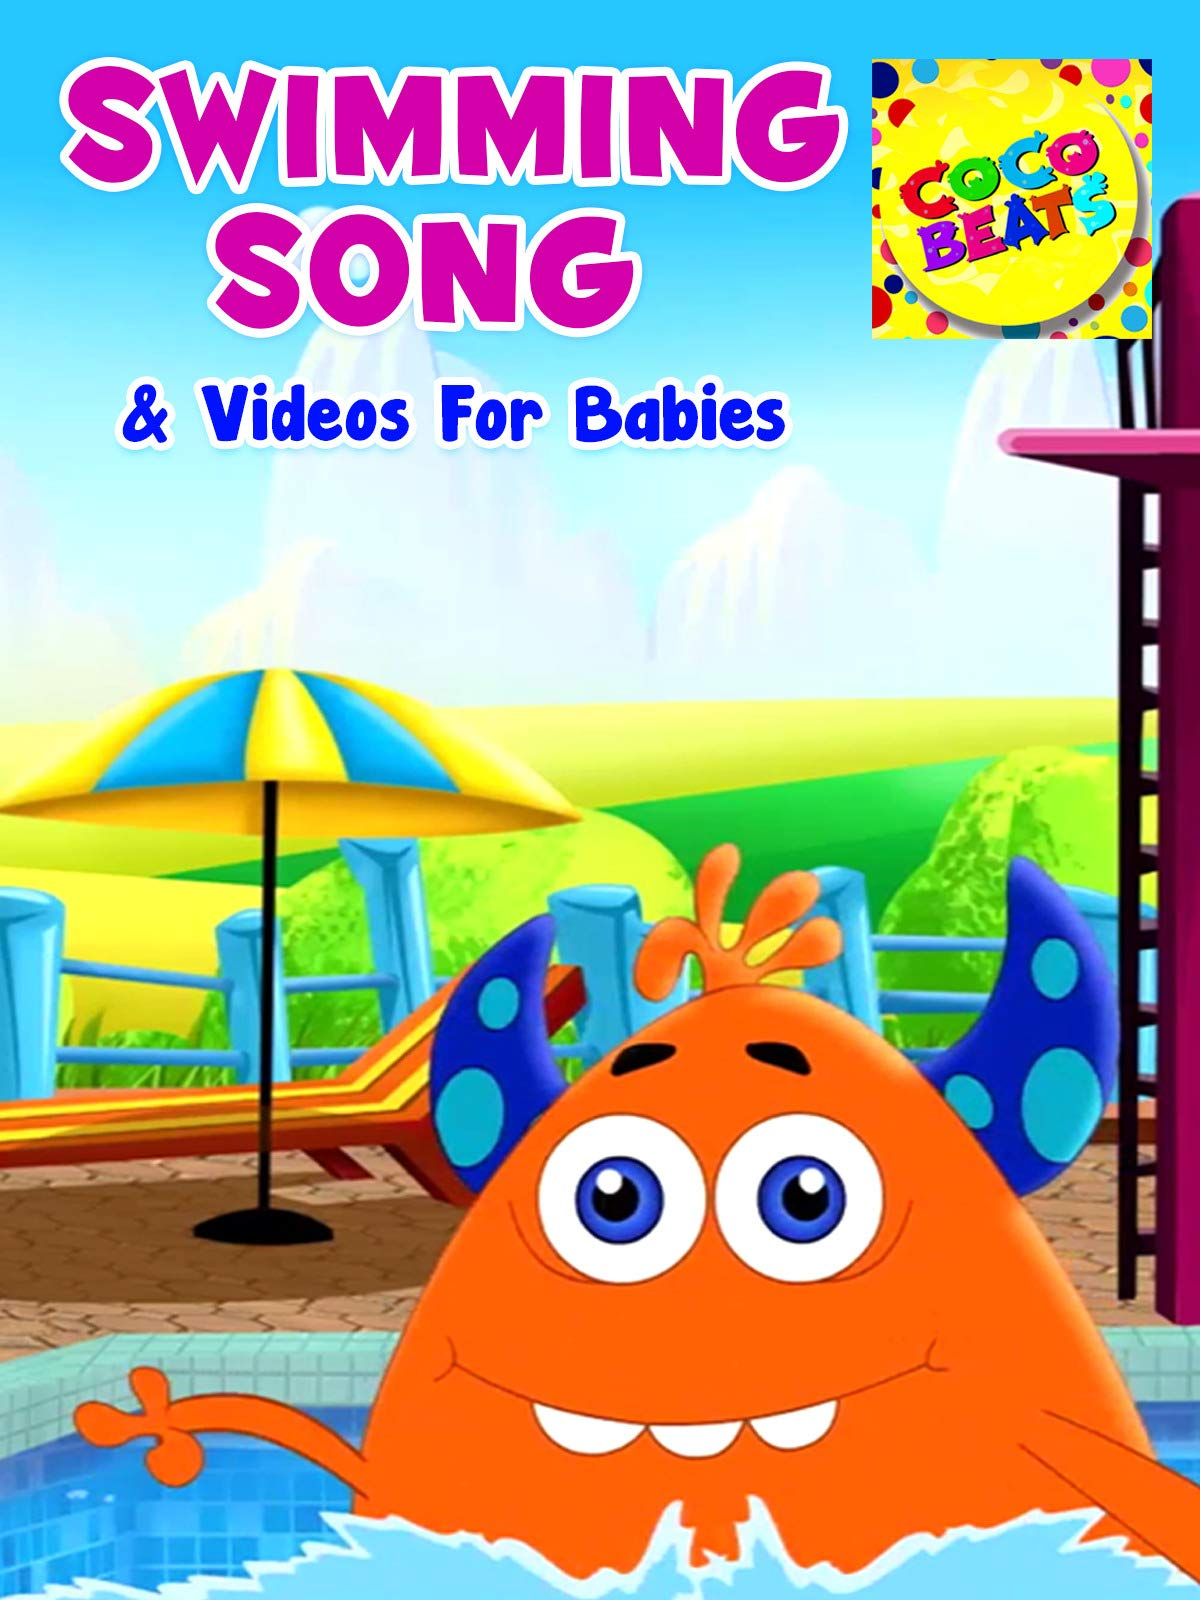 Swimming Song and Videos For Babies - Coco Beats on Amazon Prime Video UK